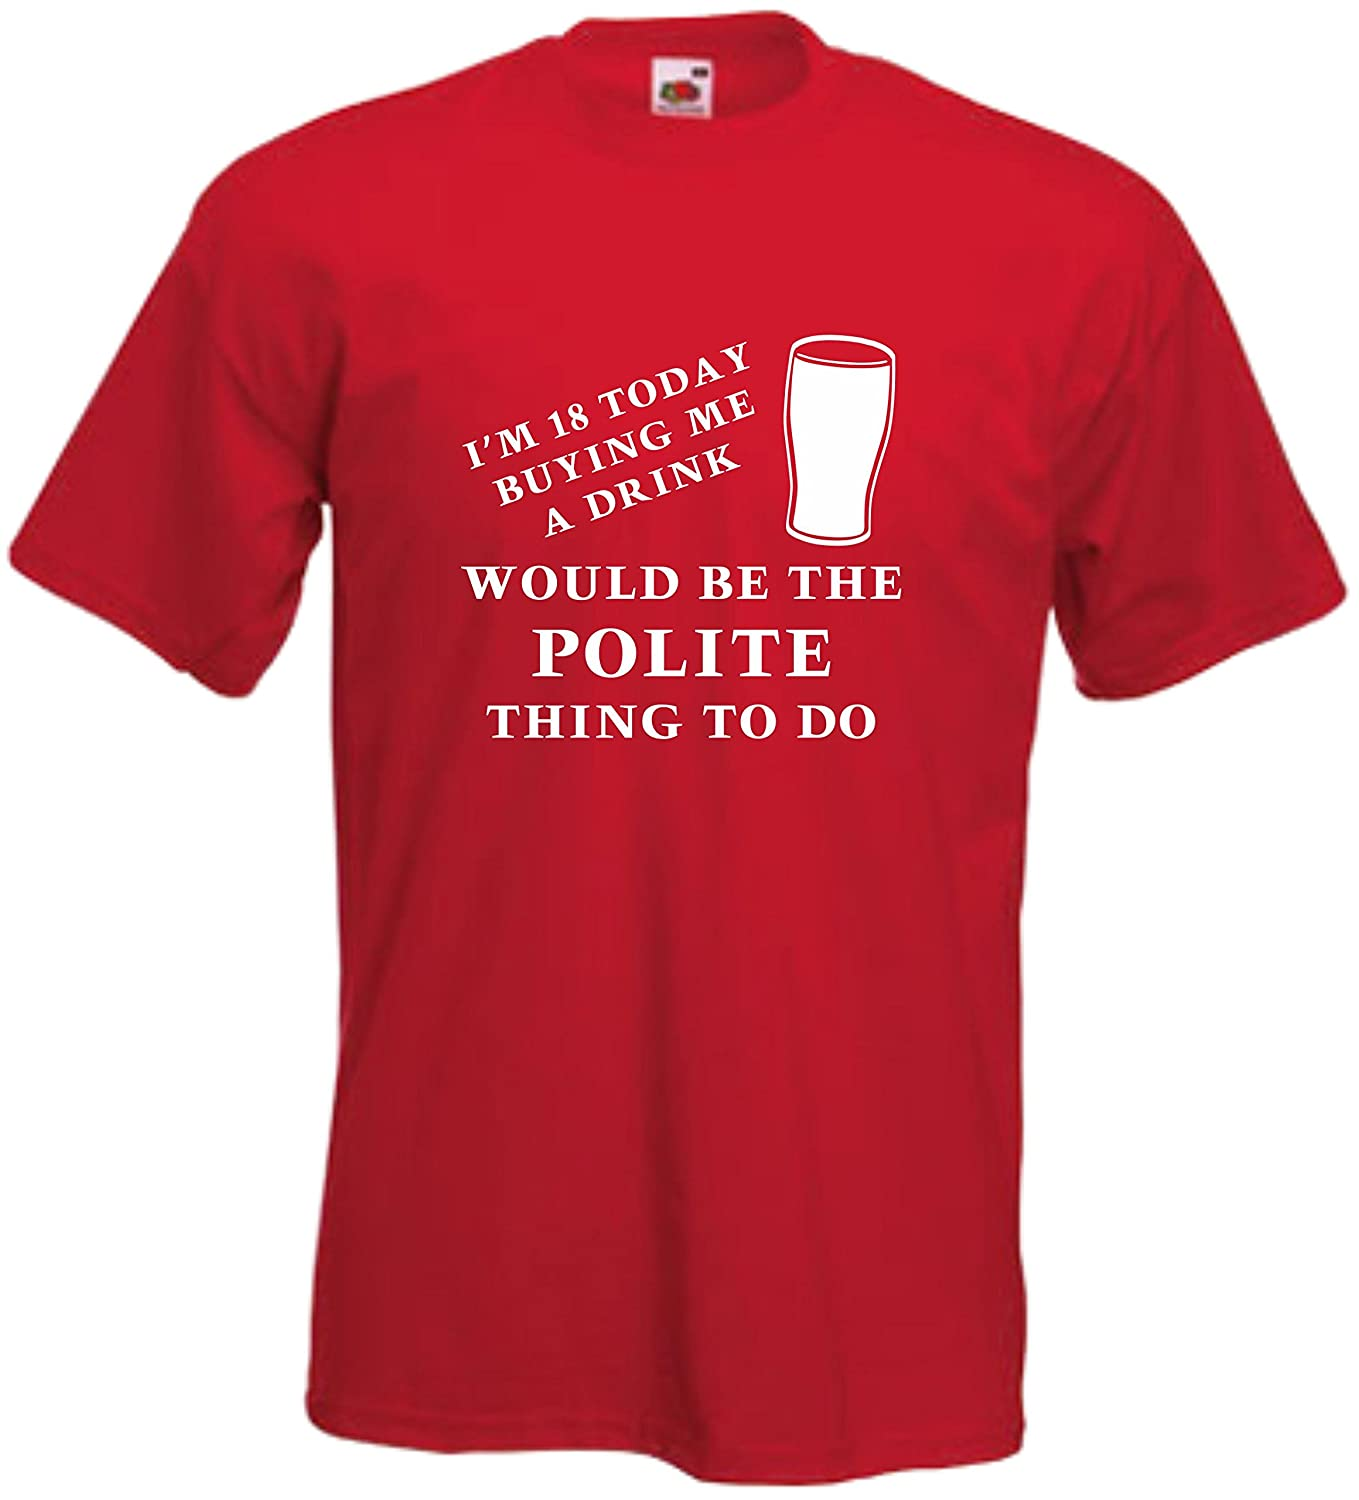 43rd BIRTHDAY T Shirt S-XXL BUYING ME A DRINK WOULD BE THE POLITE THING TO DO